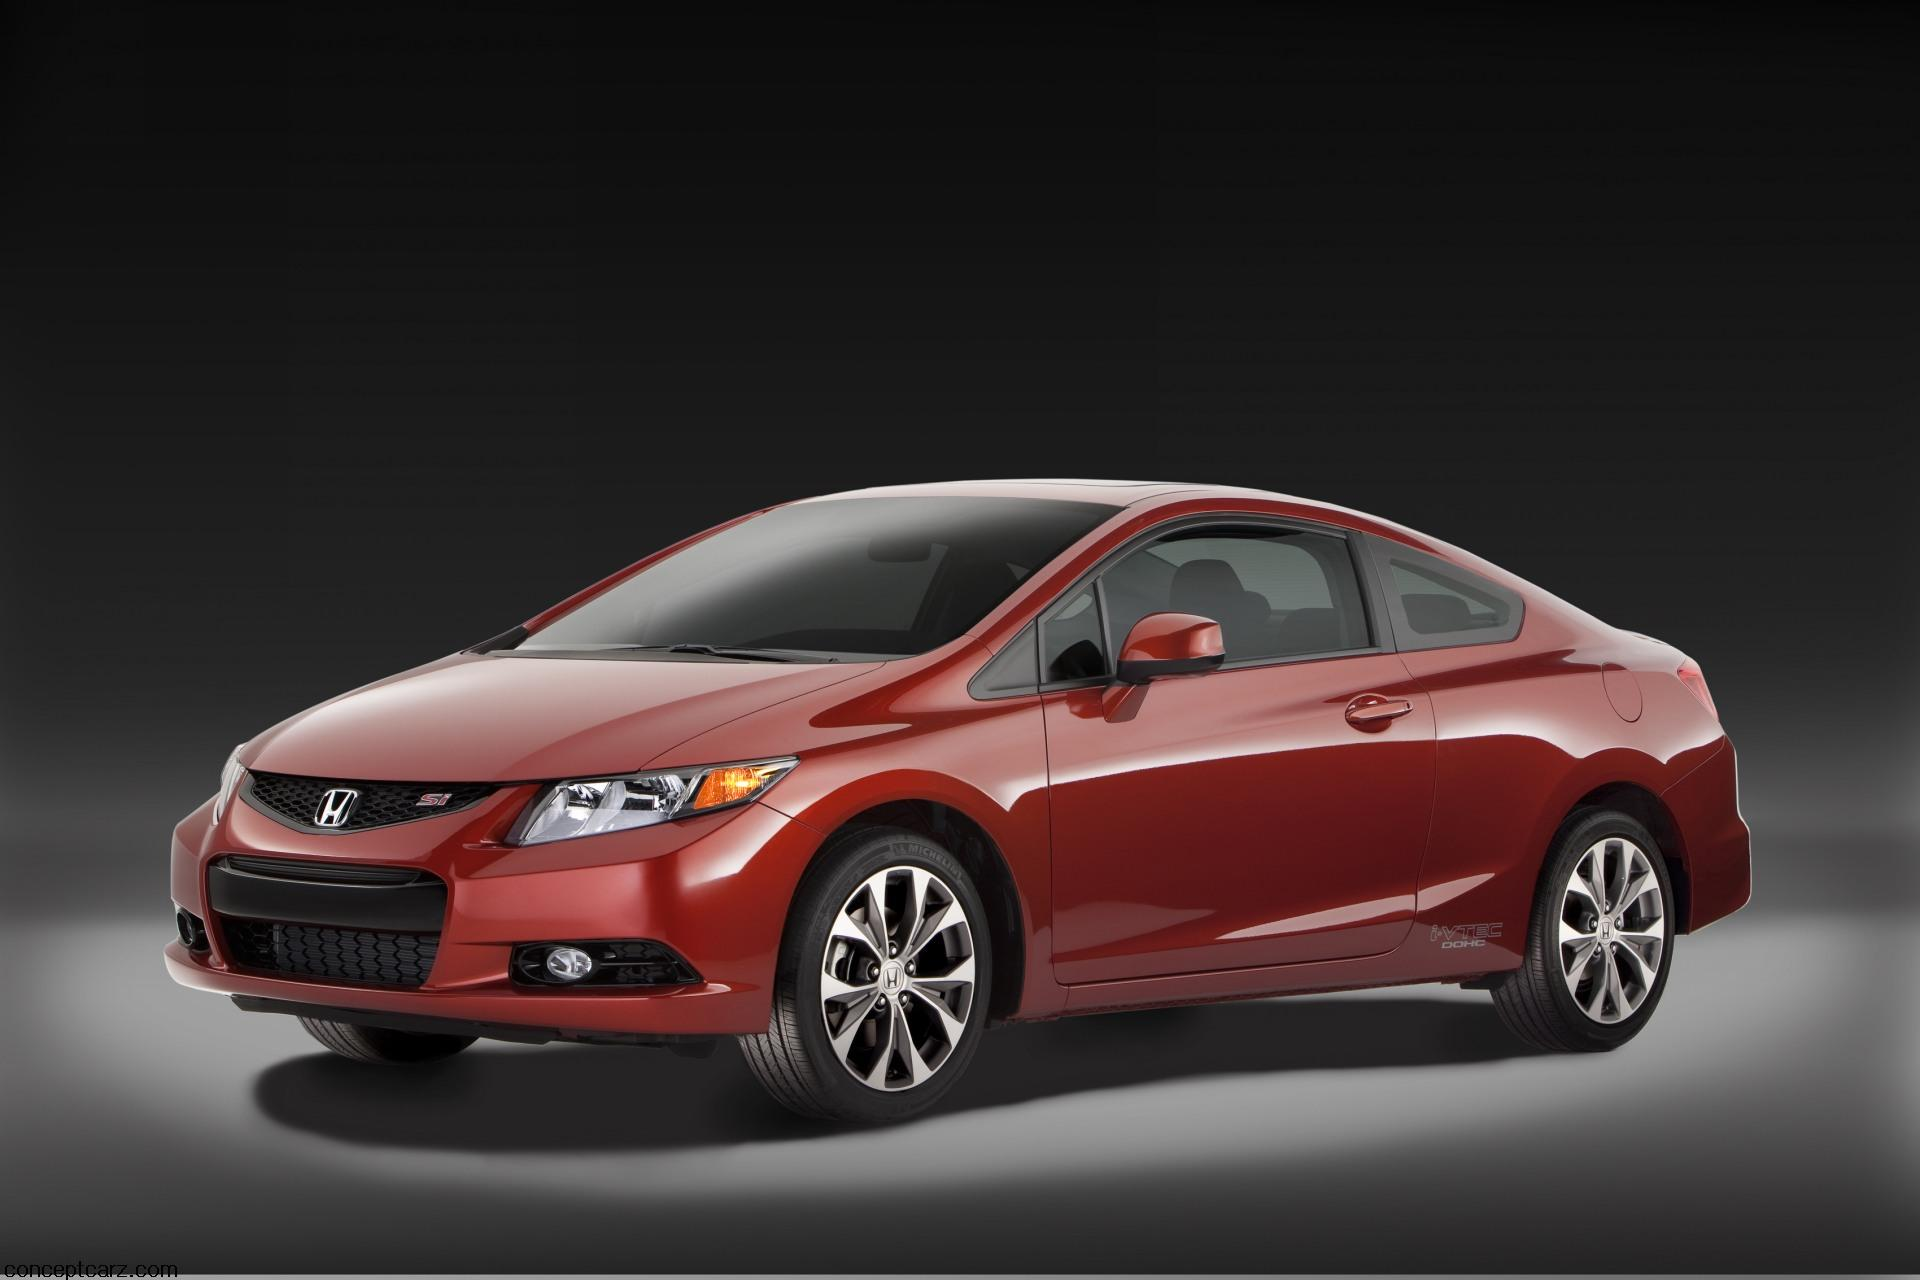 2012 Honda Civic Technical Specifications And Data. Engine, Dimensions And  Mechanical Details.   Conceptcarz.com